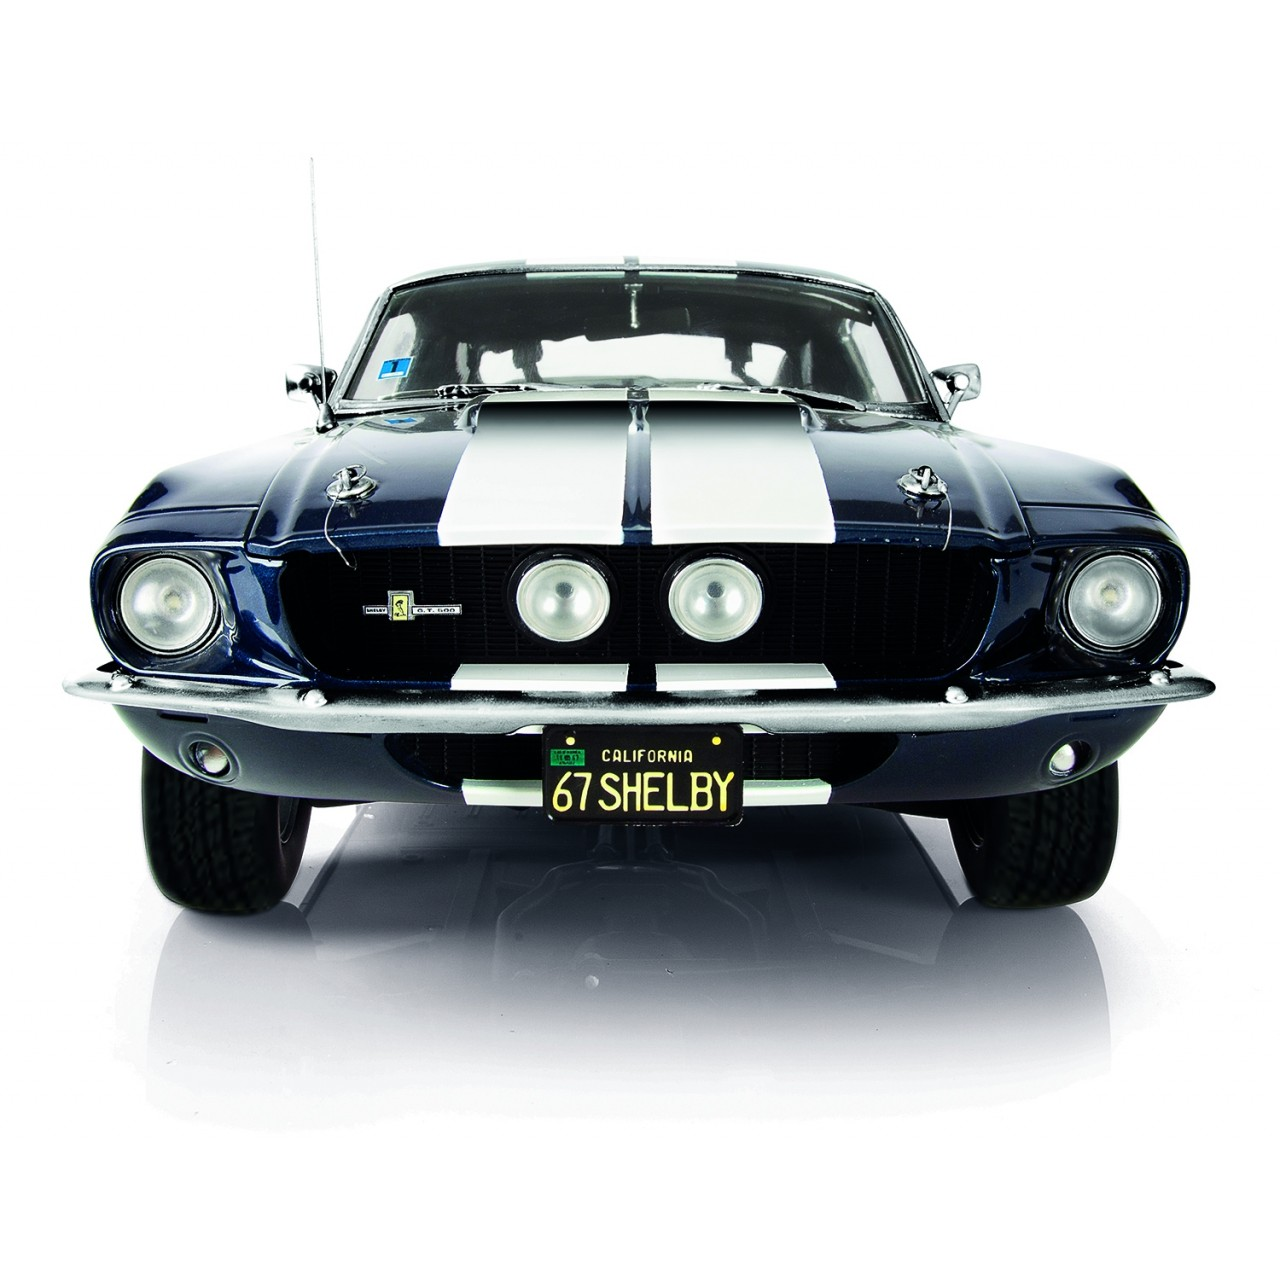 Ford Shelby Mustang Gt500 1 8 Modell De Agostini Modelspace